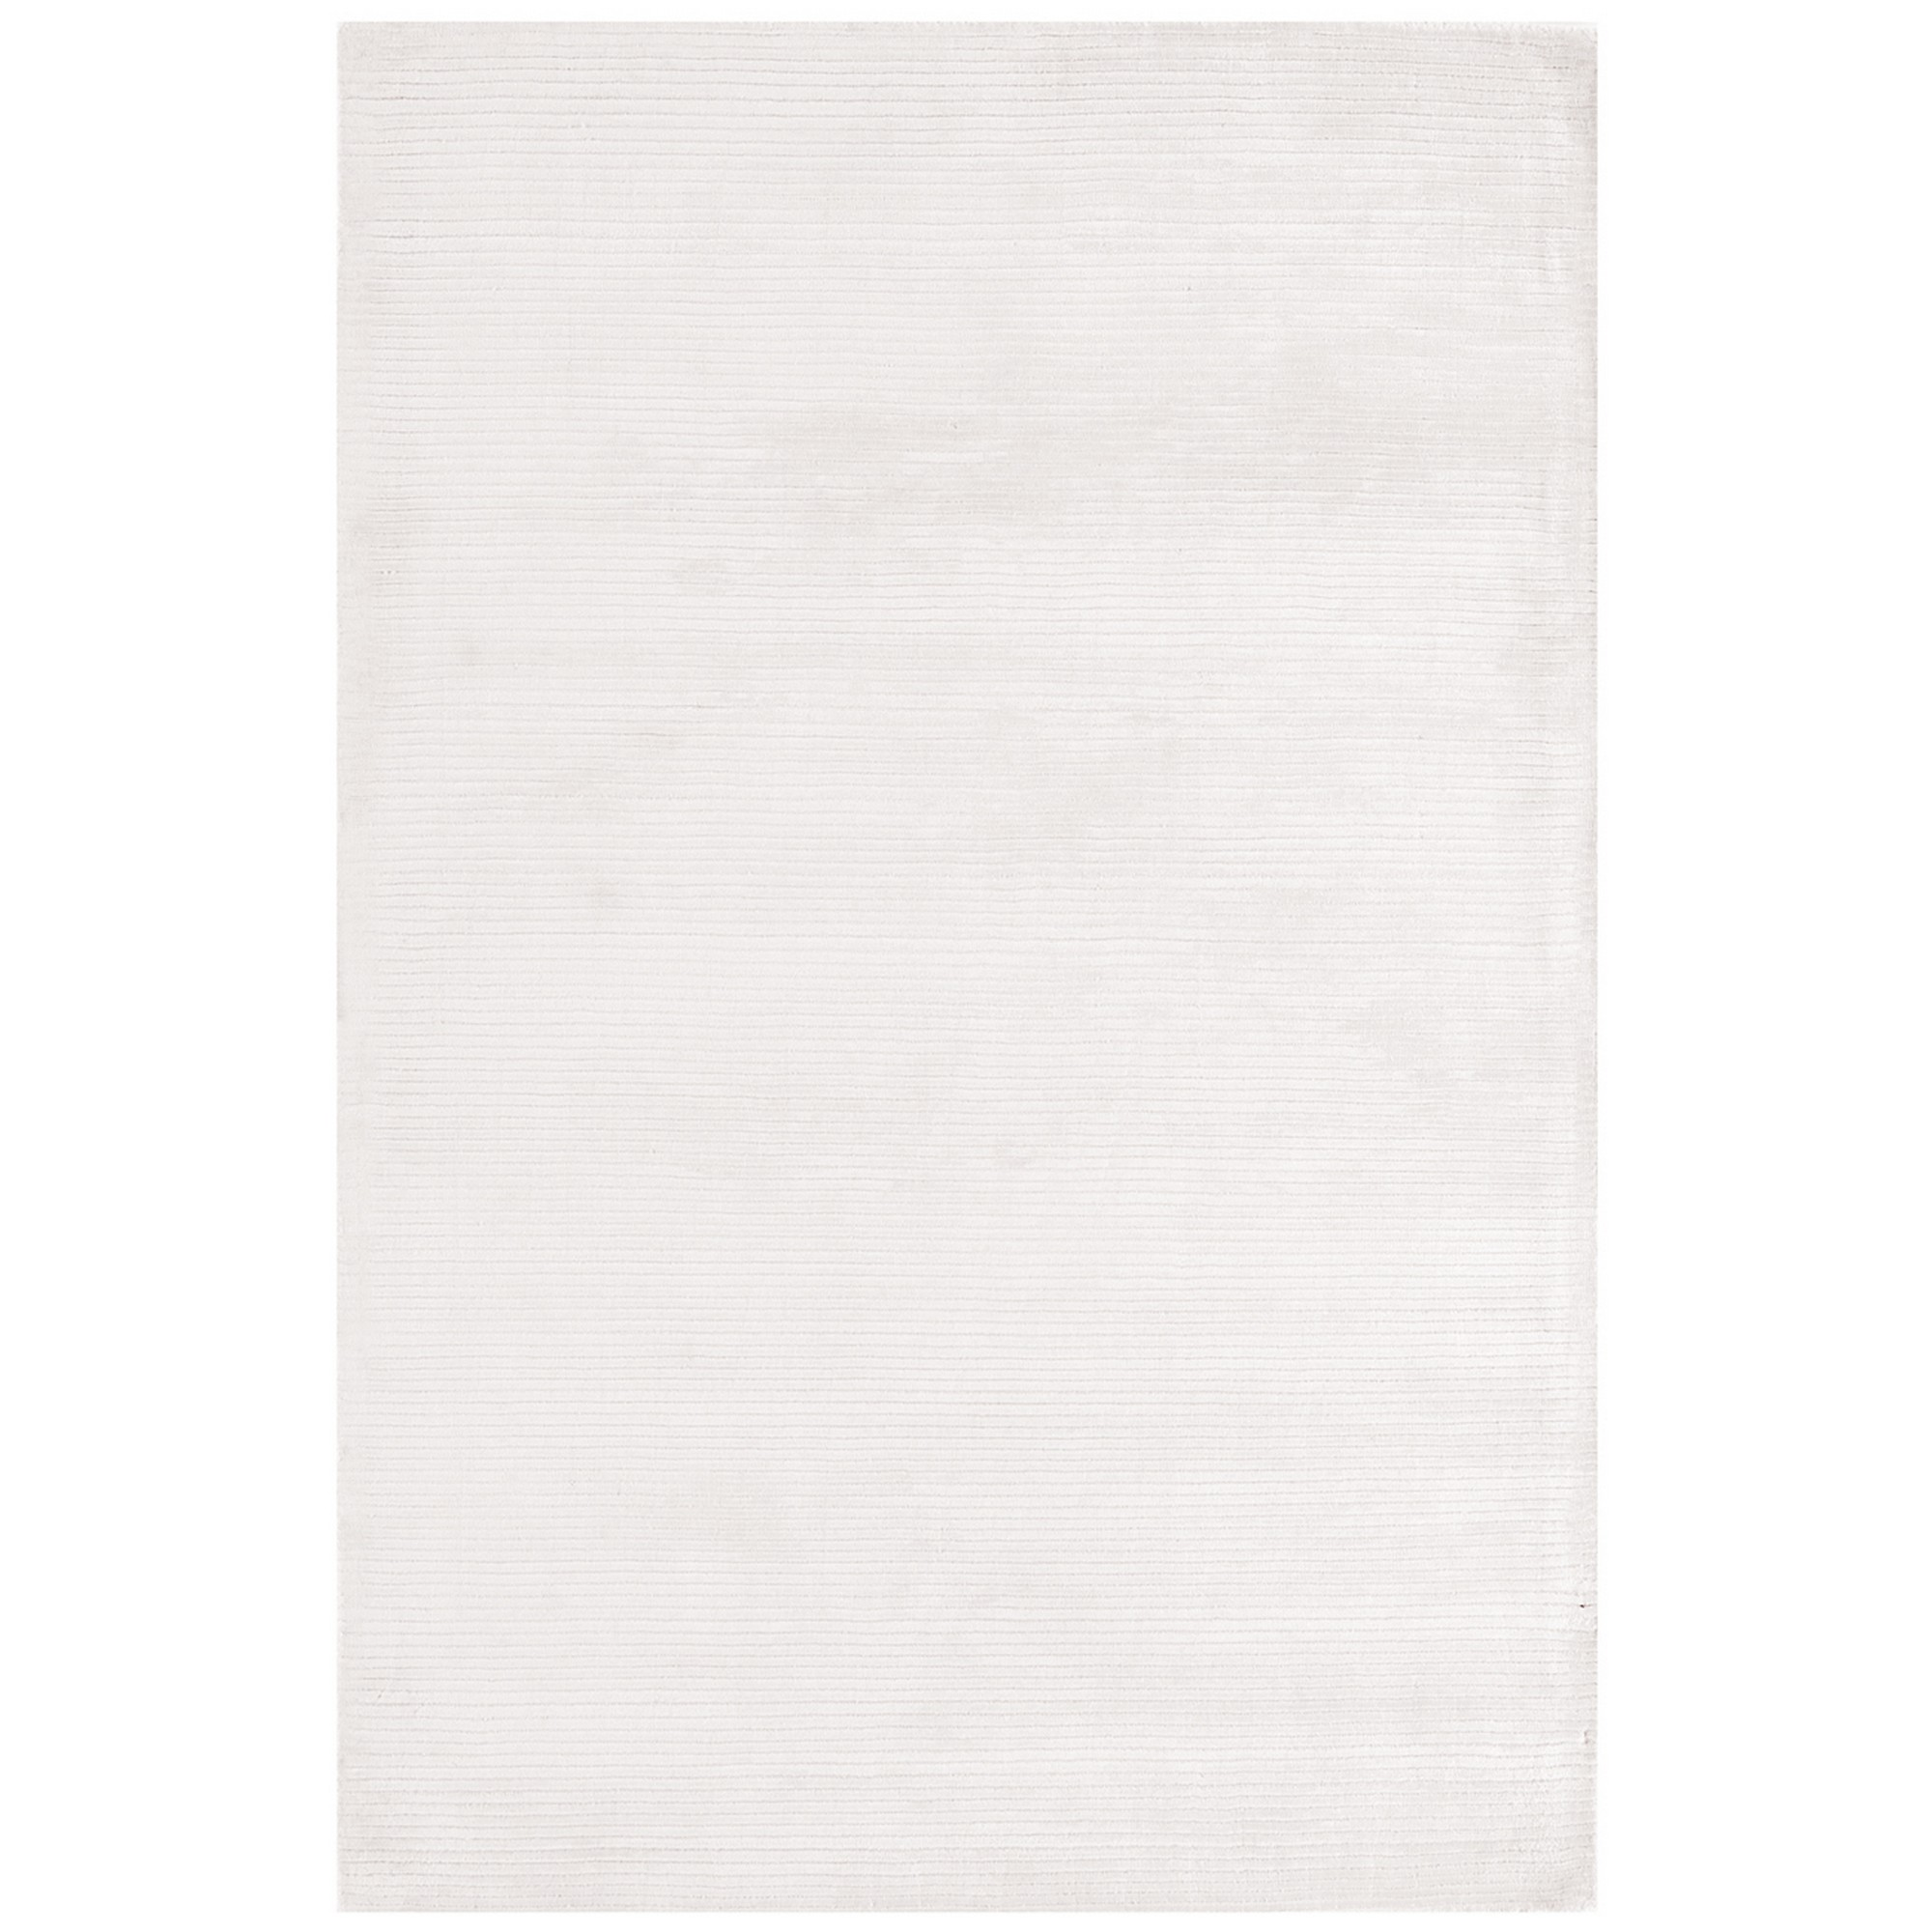 Bellagio Rugs in White